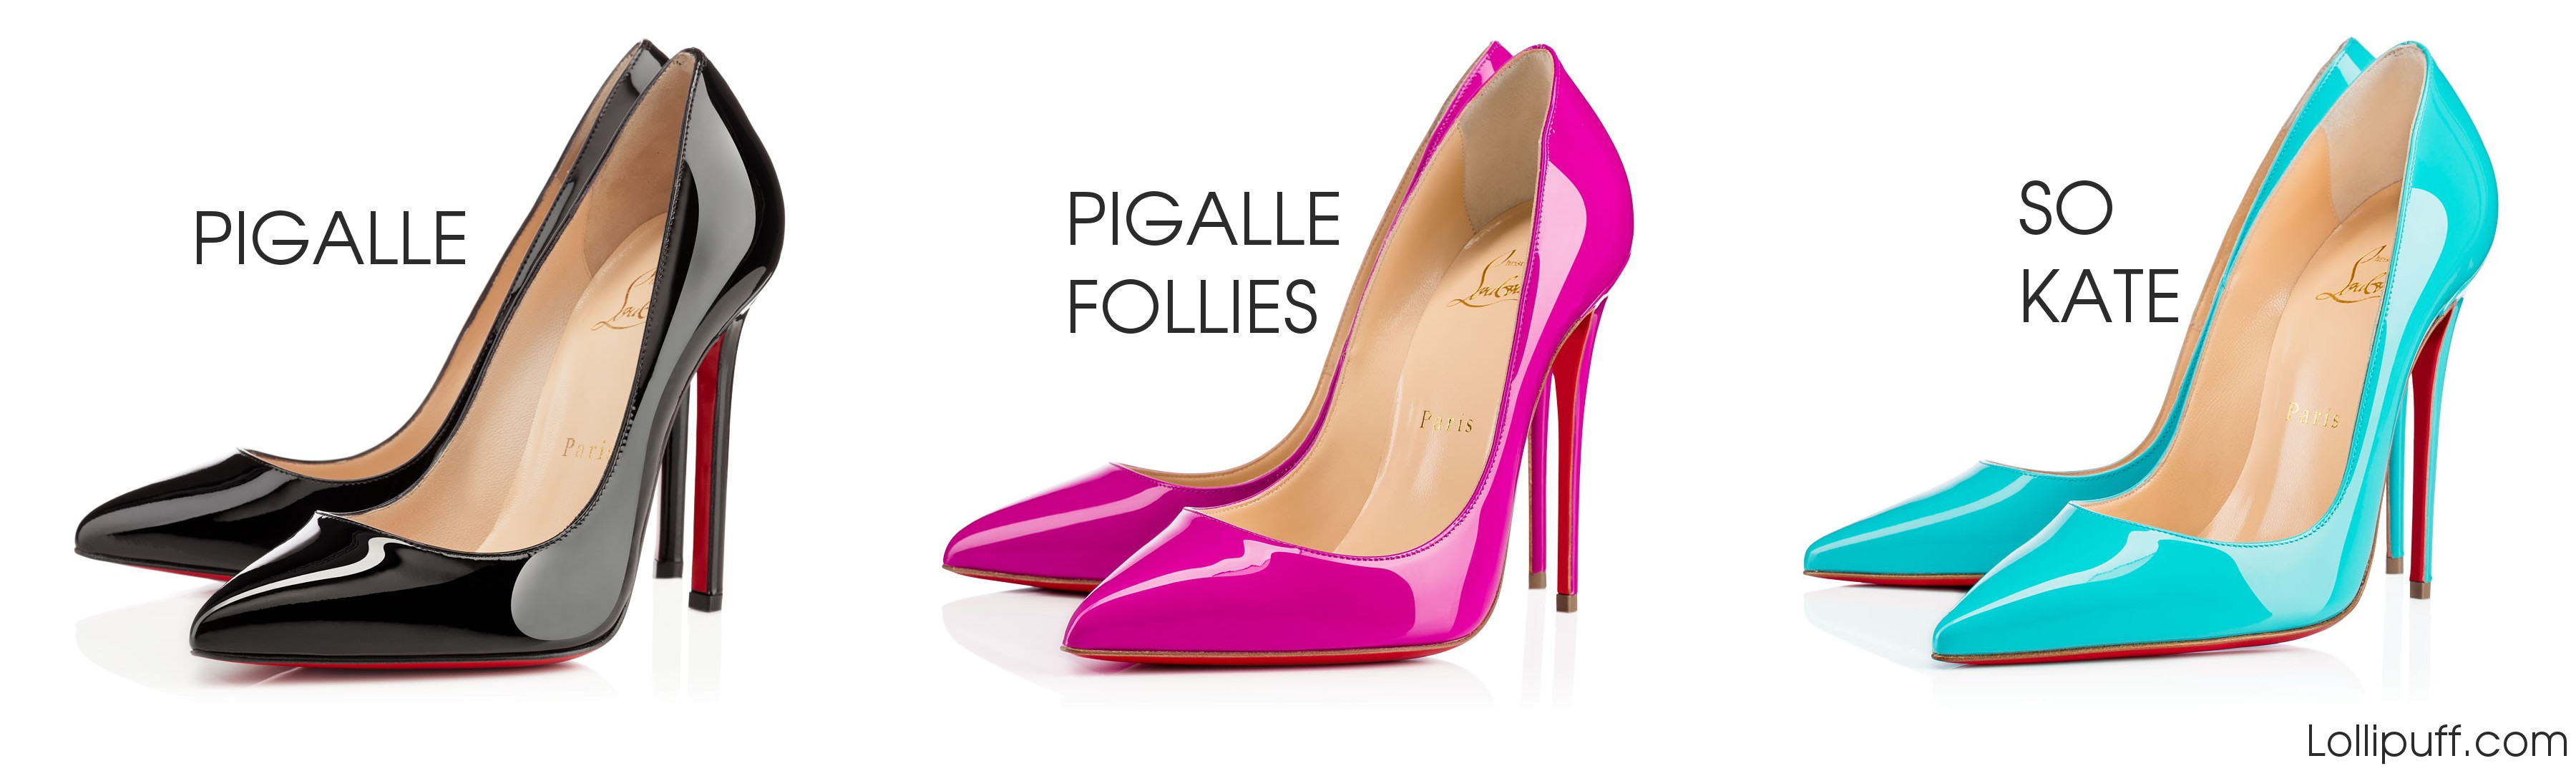 christian louboutin pigalle follies 120mm ombré pumps